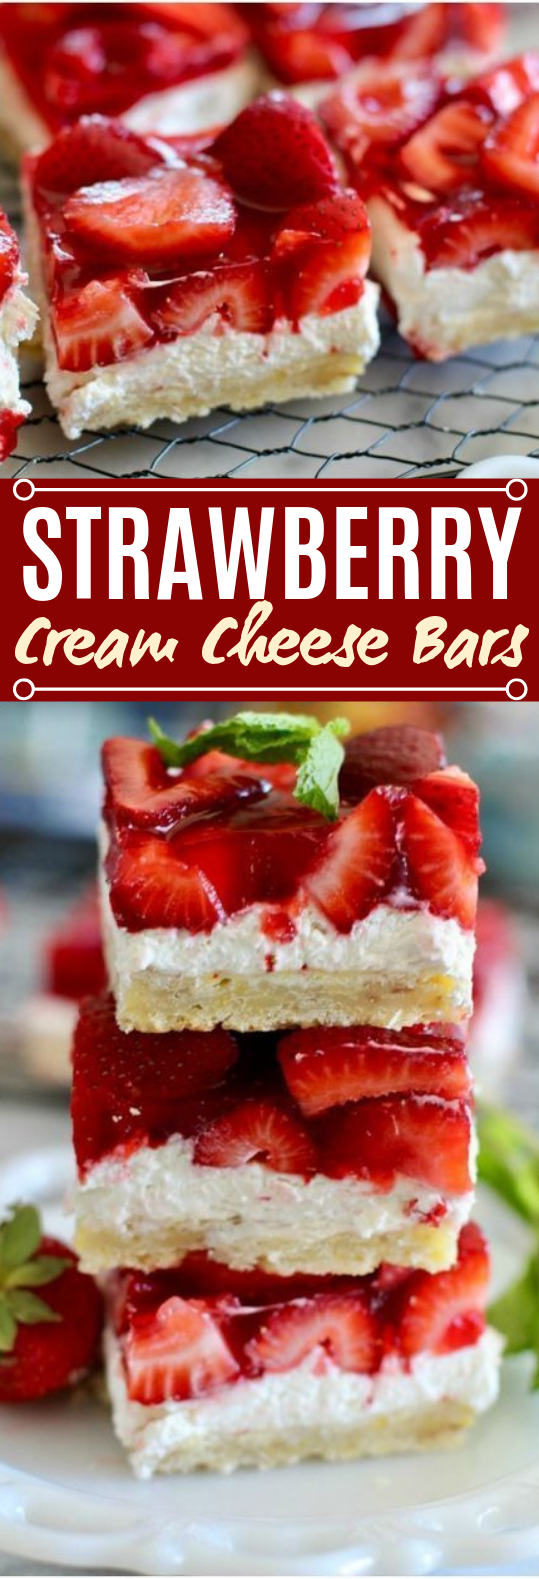 STRAWBERRY CHEESECAKE BARS #desserts #cake